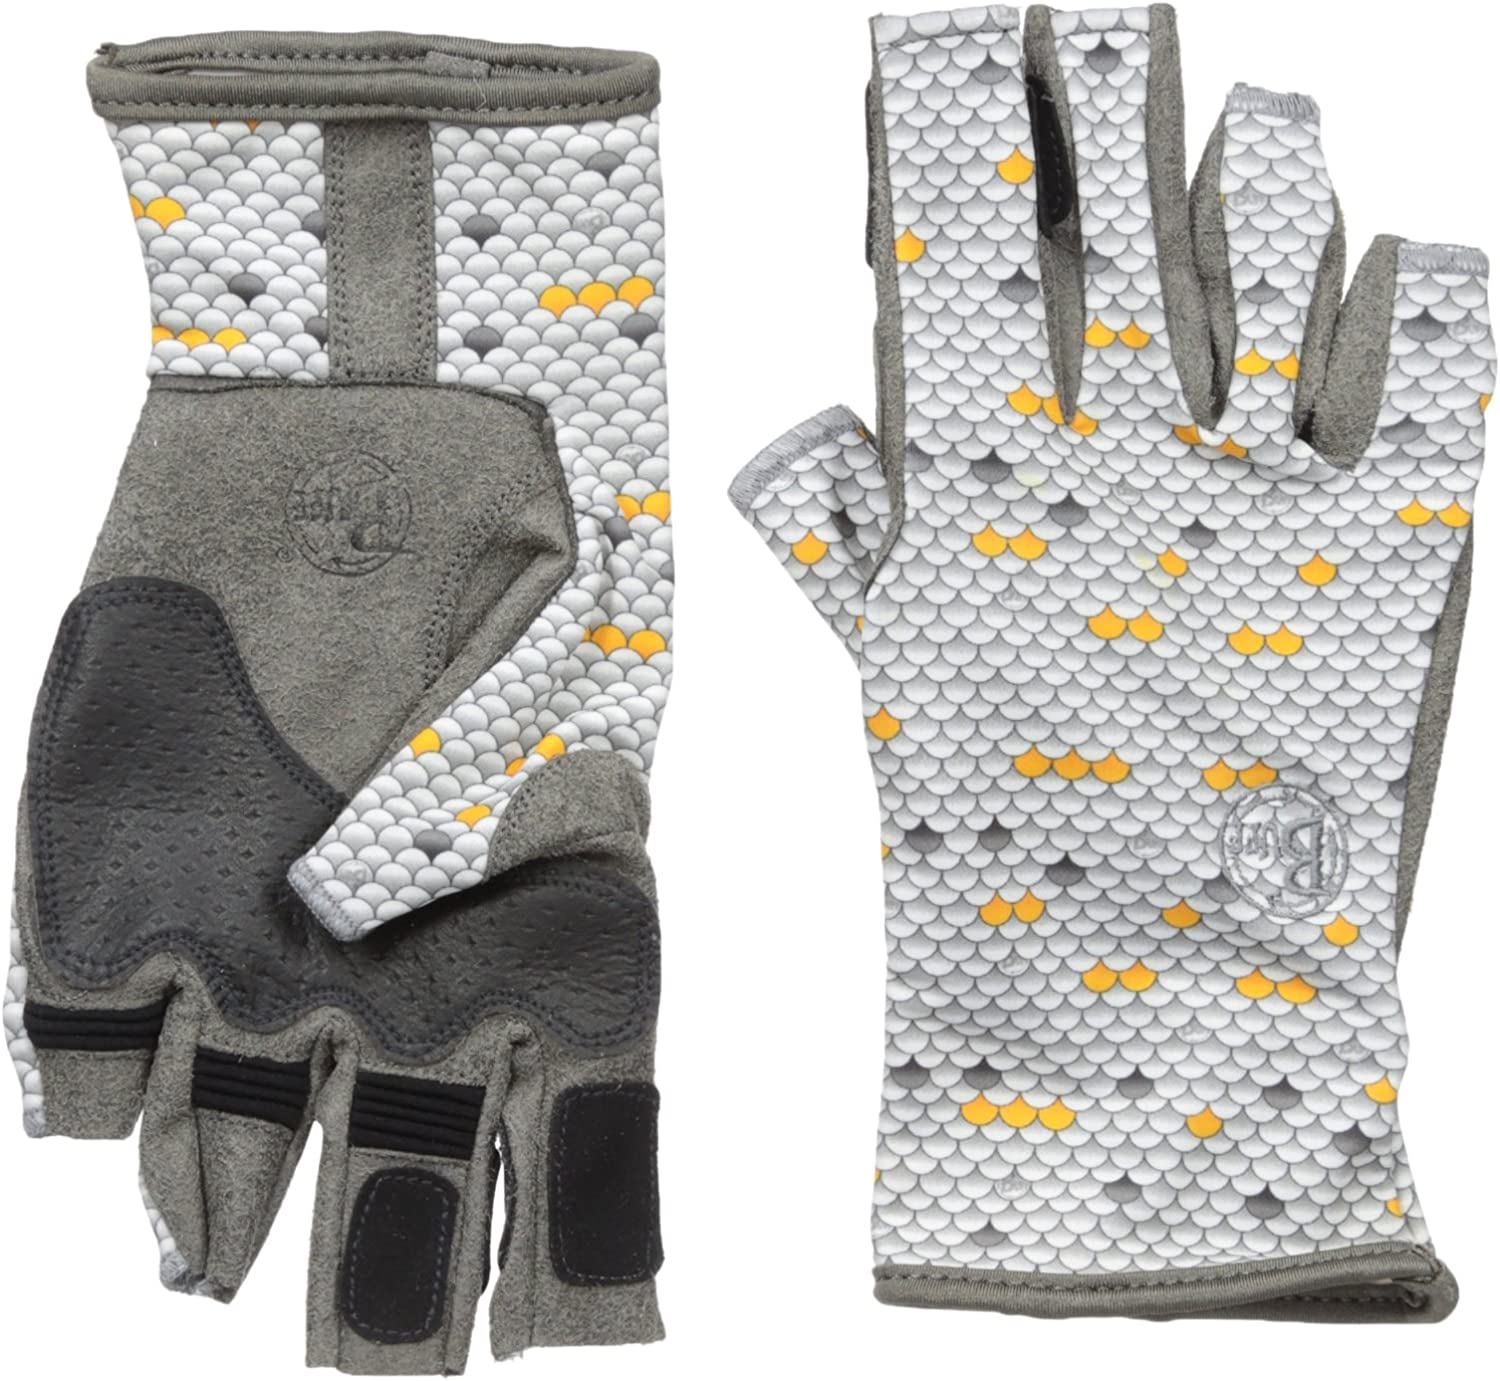 BUFF Womens Pro Series Gloves Max 83% OFF OFFicial store Angler 3